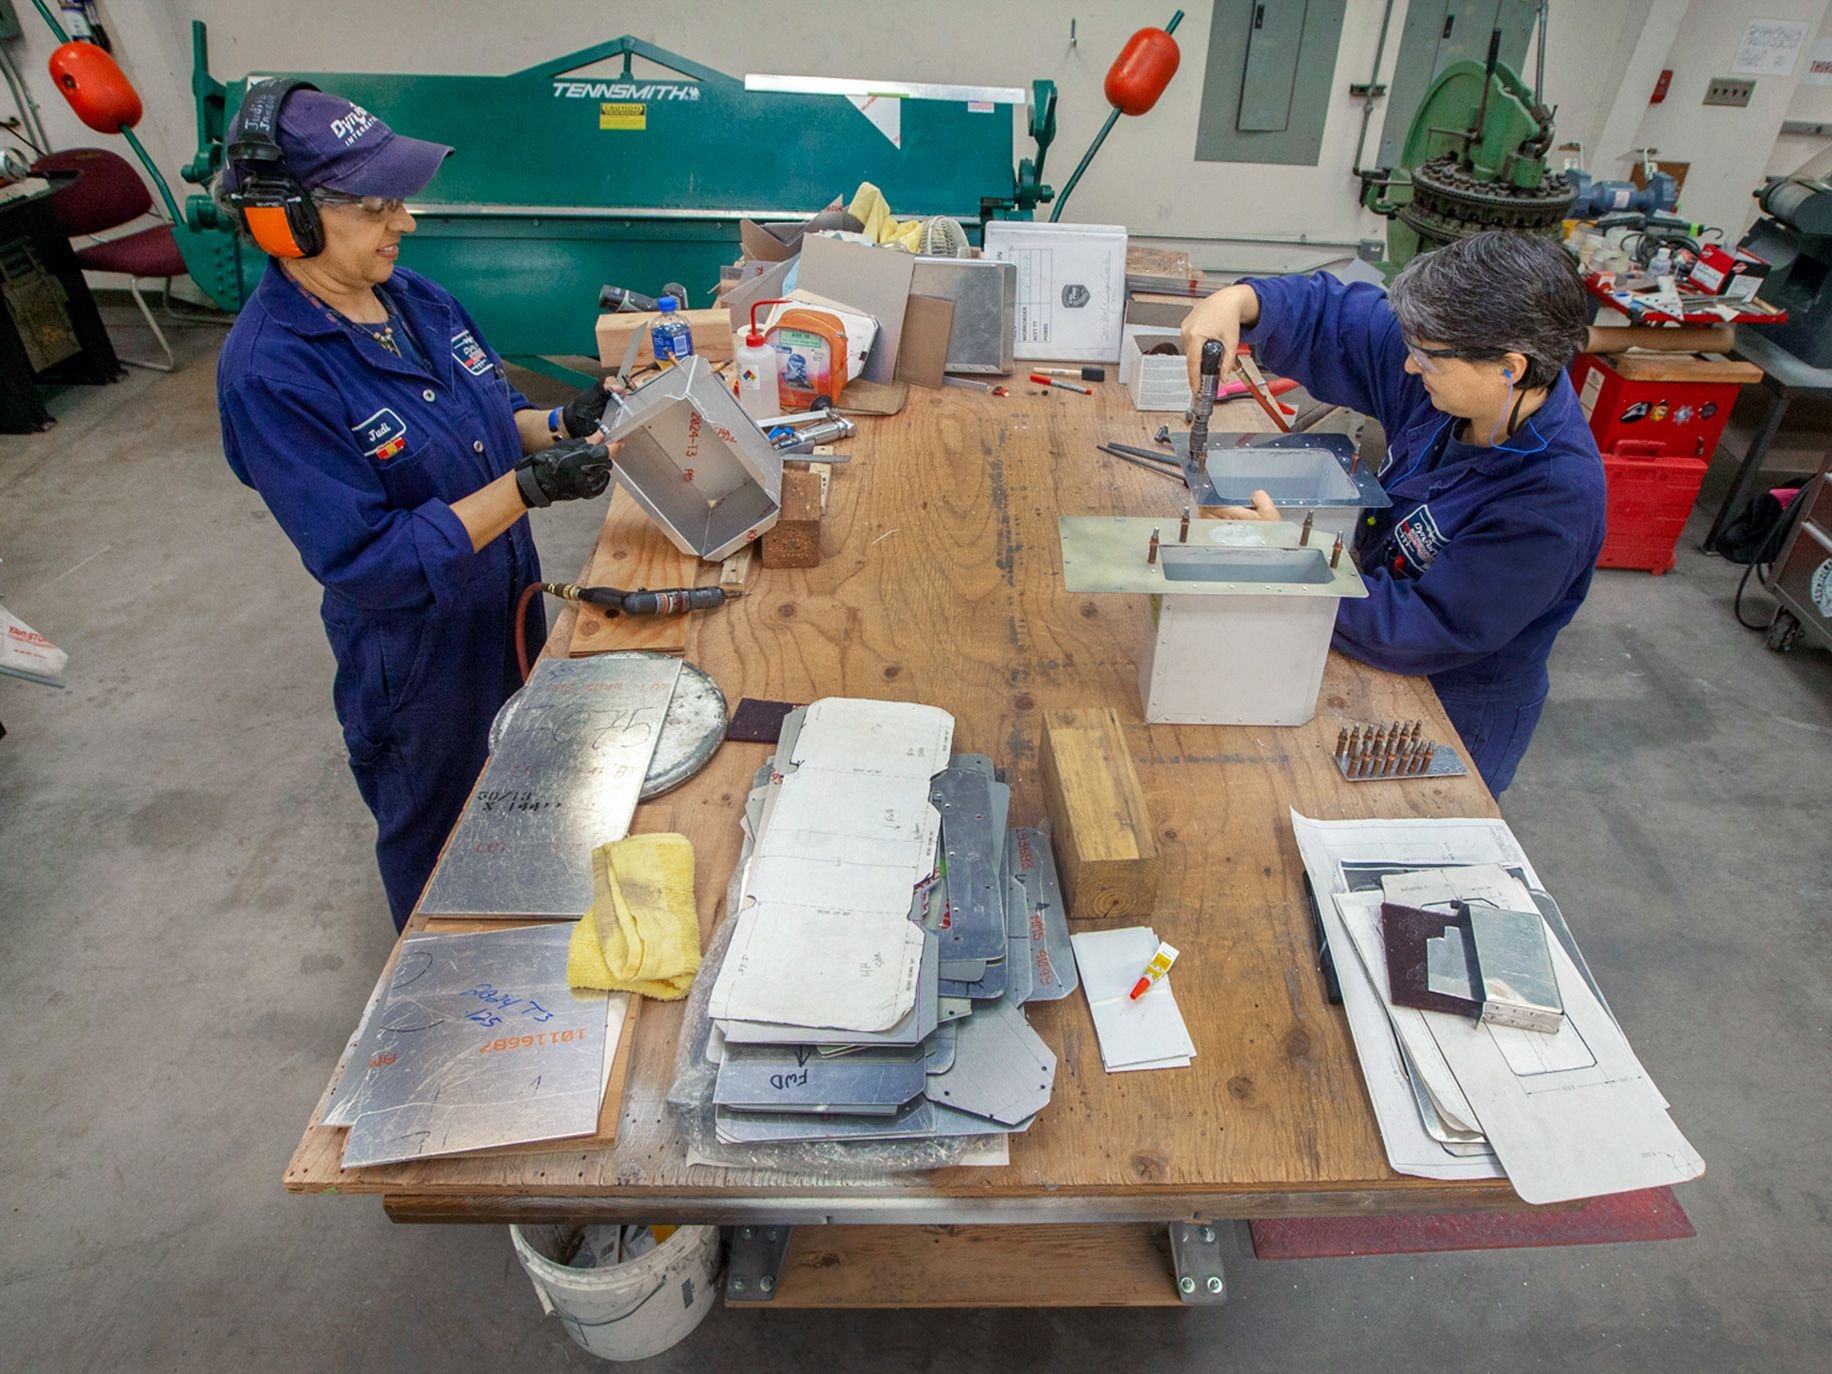 Sheet metal smiths Judi Janelle (left) and Kelly Greco fabricating sheet metal storage boxes for installation in the S2-T air tankers.